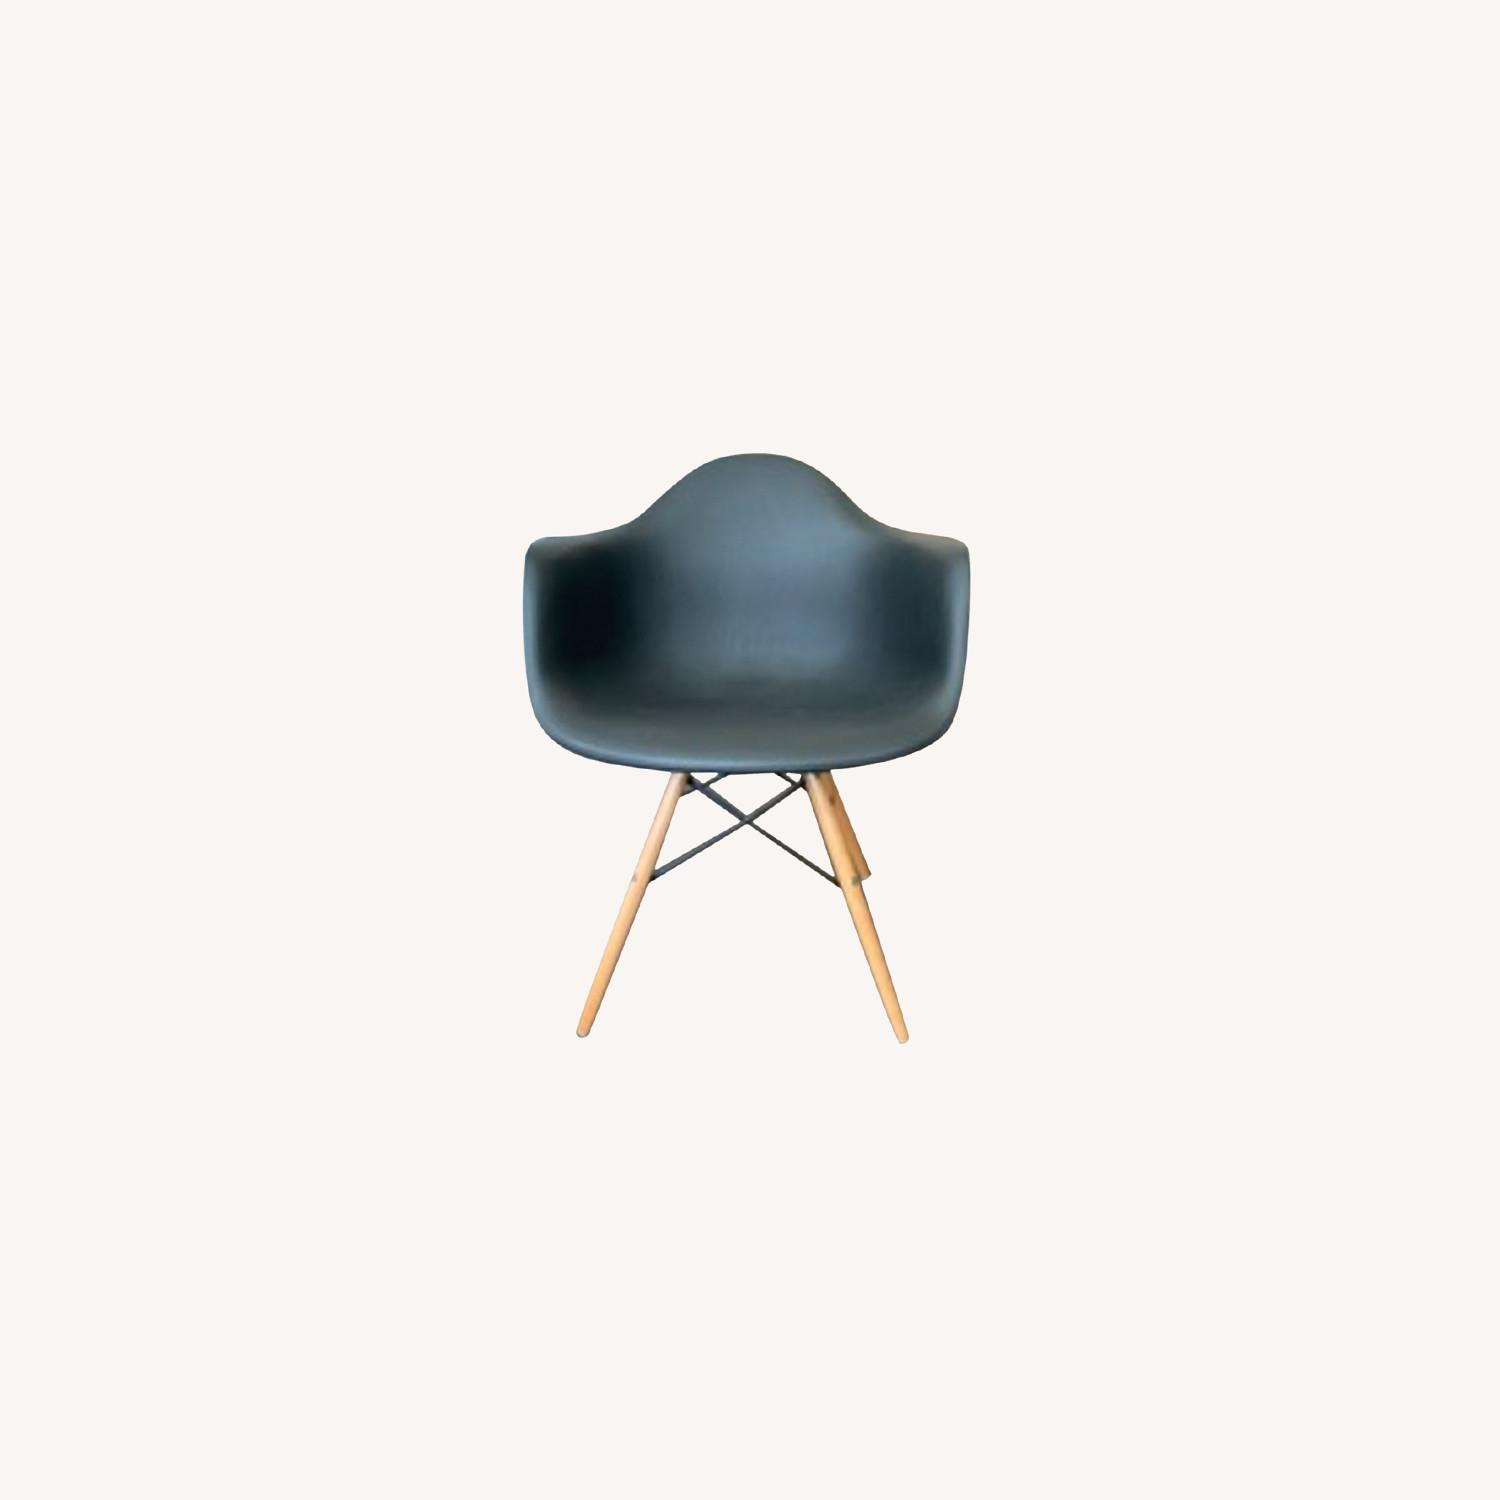 Eames DAW Molded Plastic Armchair Replica x 2 - image-0